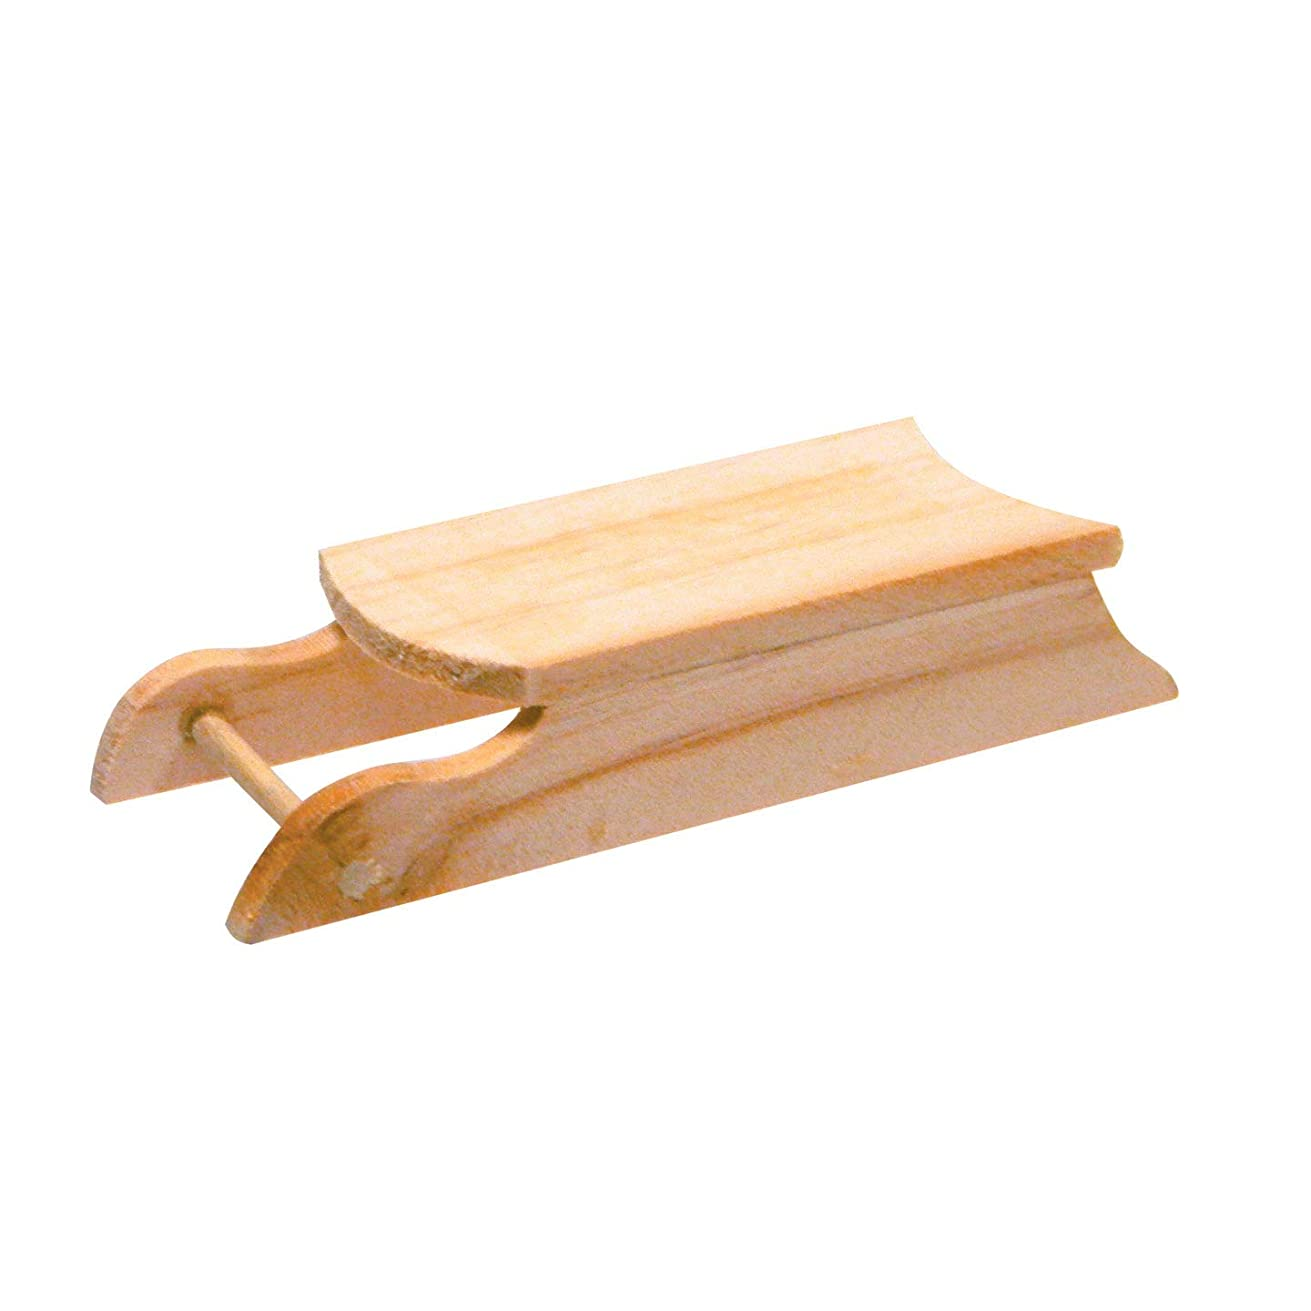 DARICE 2838 Unfinished Wood Sled: 3.6875 inches